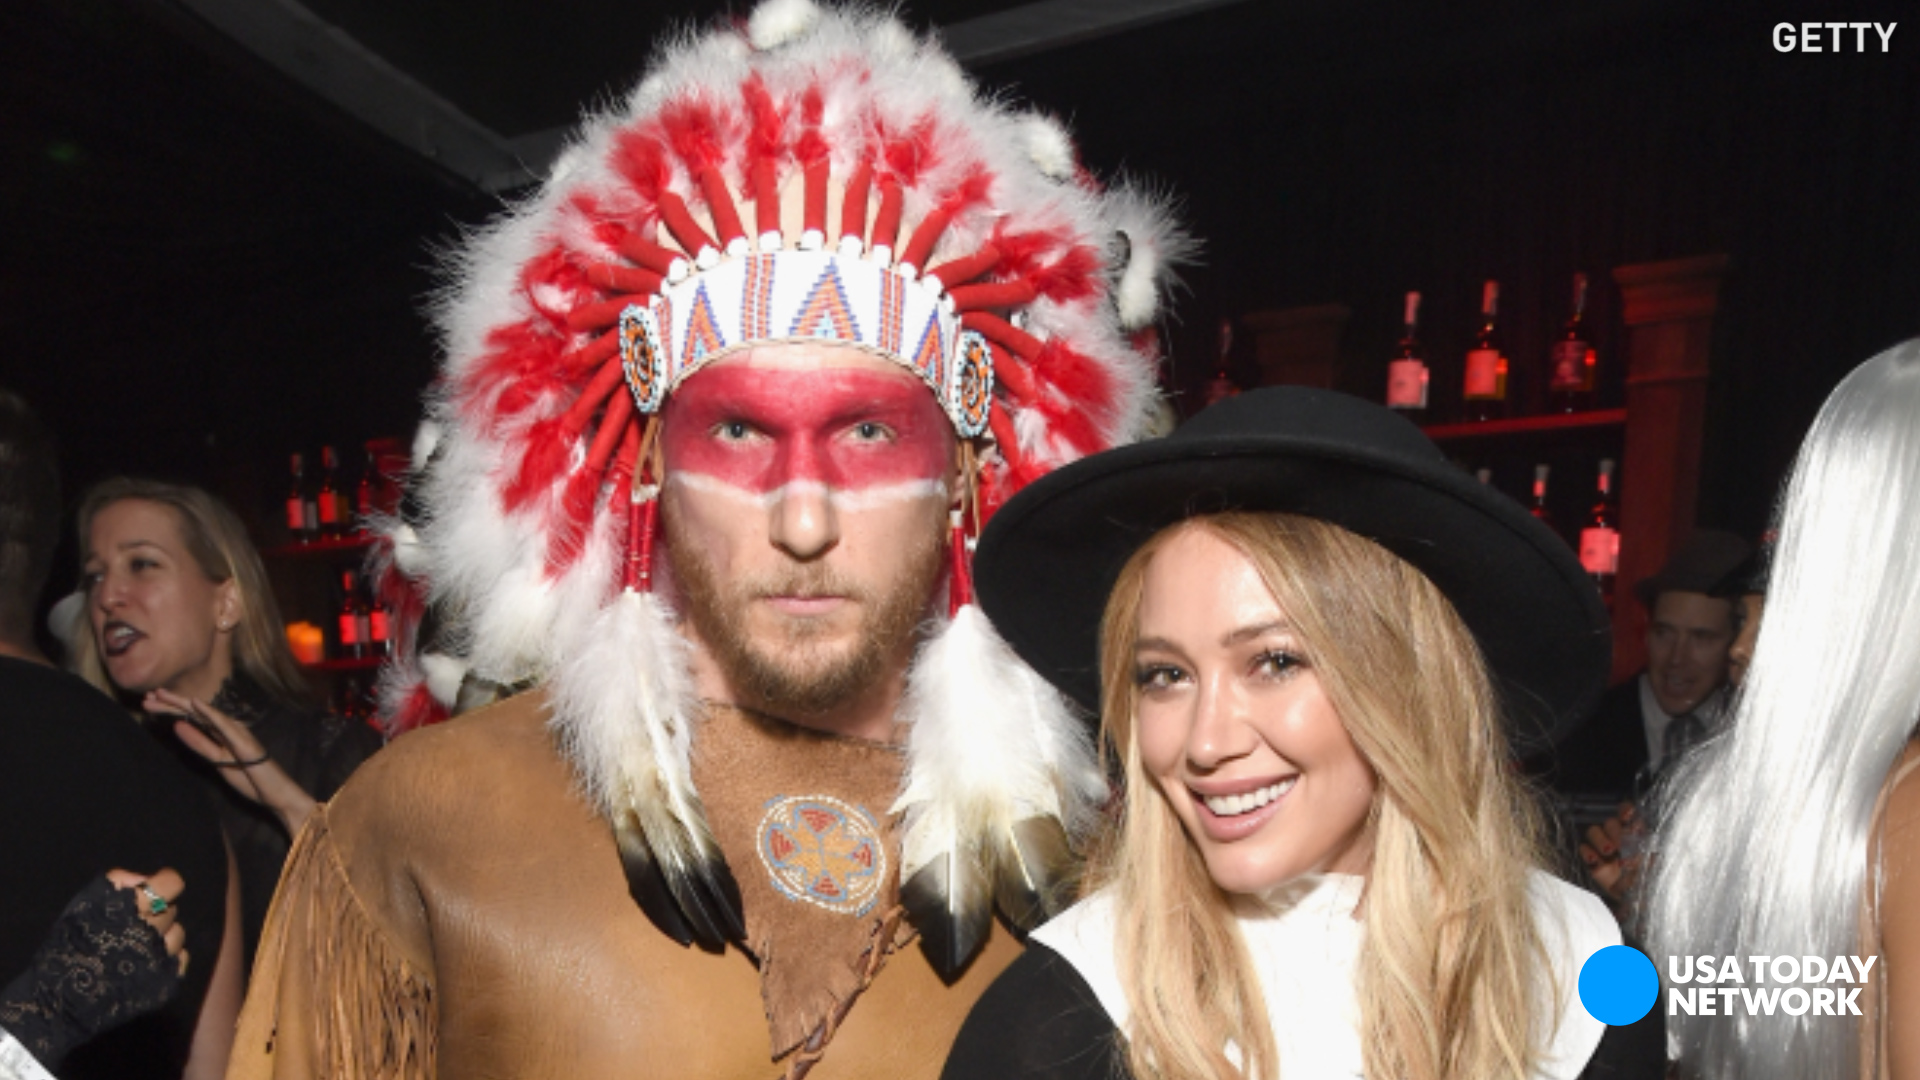 Hilary Duff is 'SO sorry' about her offensive Halloween costume